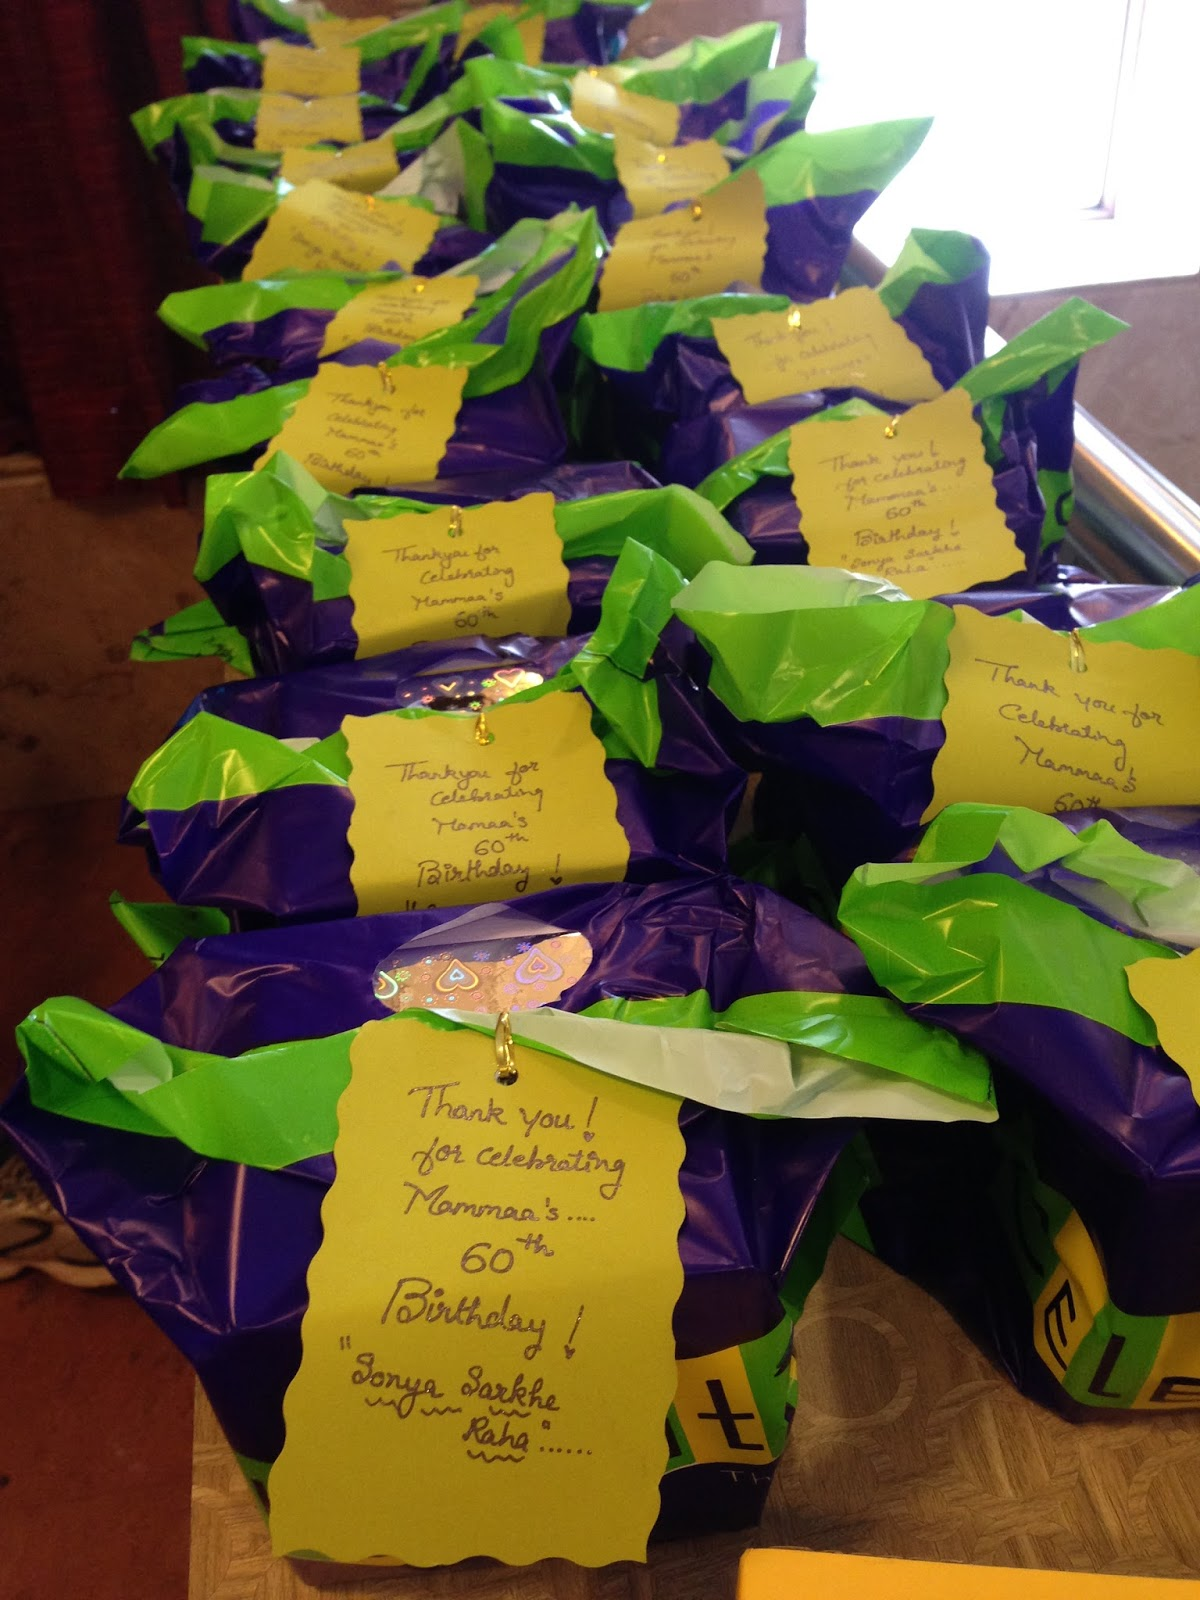 Return Gifts It Essential To Be Thankful The Guest Who Graced Celebration We Packed Up A Nice Glass Candle Stand Toblorone Chocolate Bars As